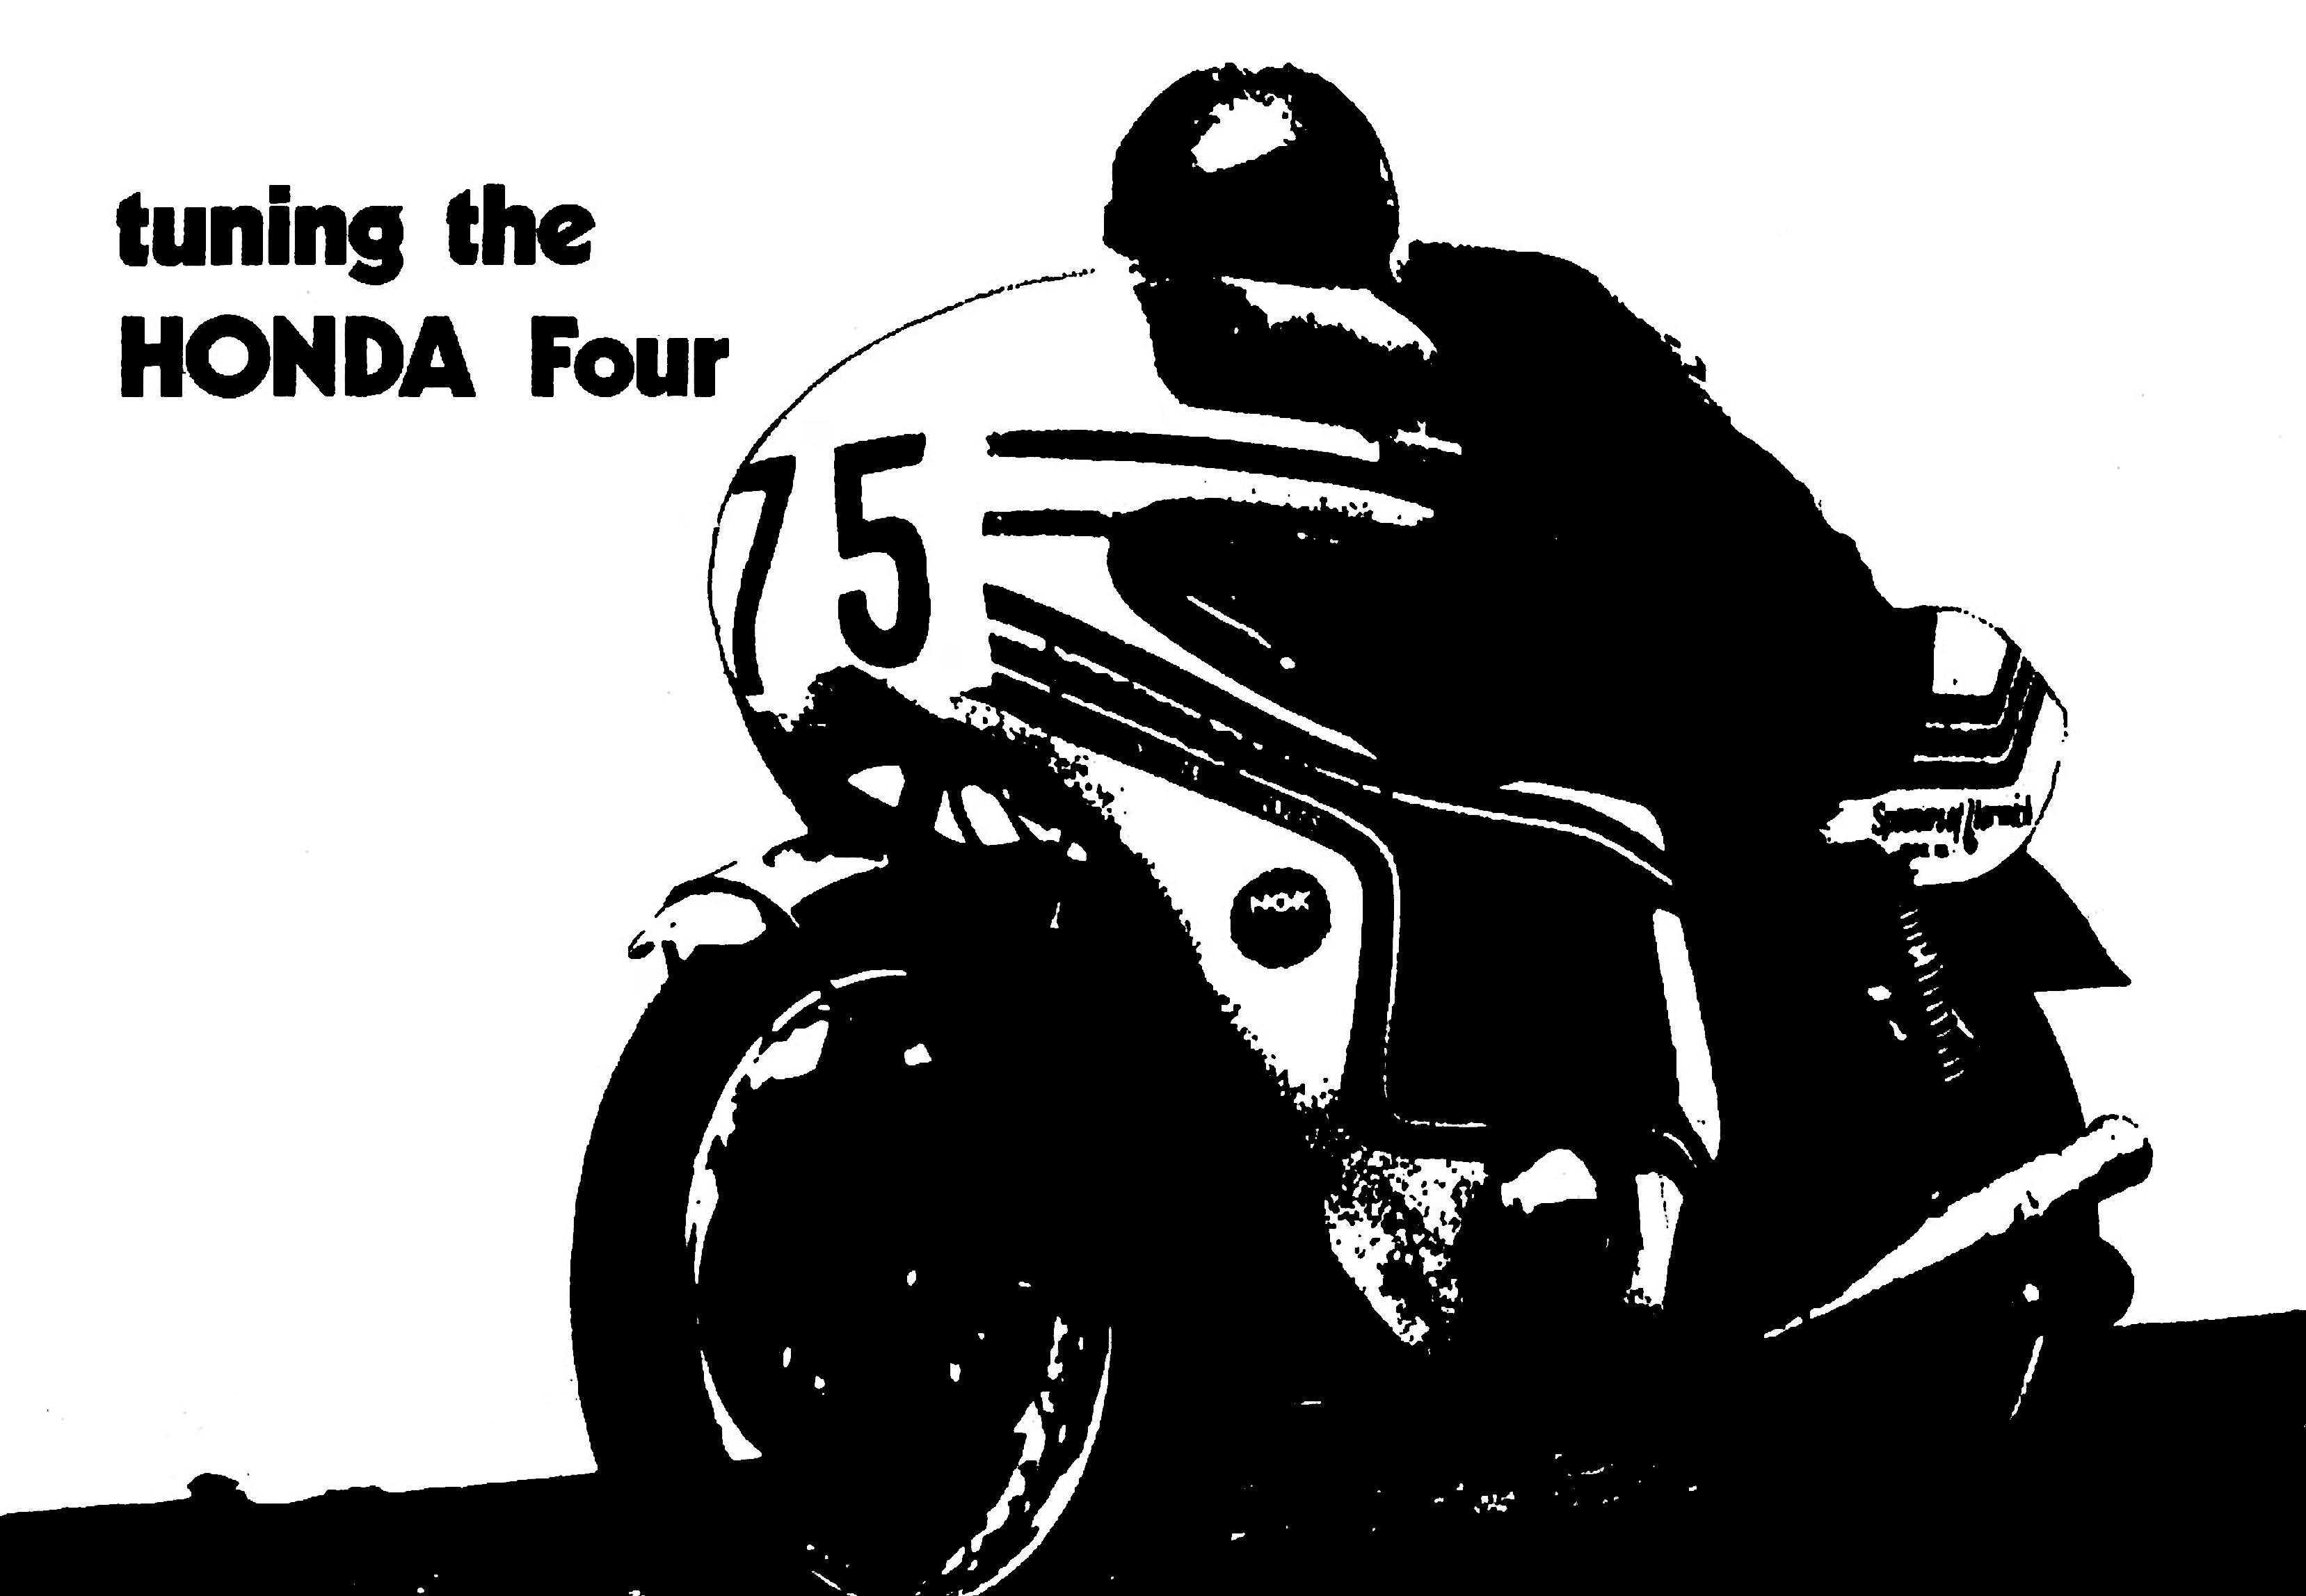 Honda Four Tuning Manual for Honda CB550F